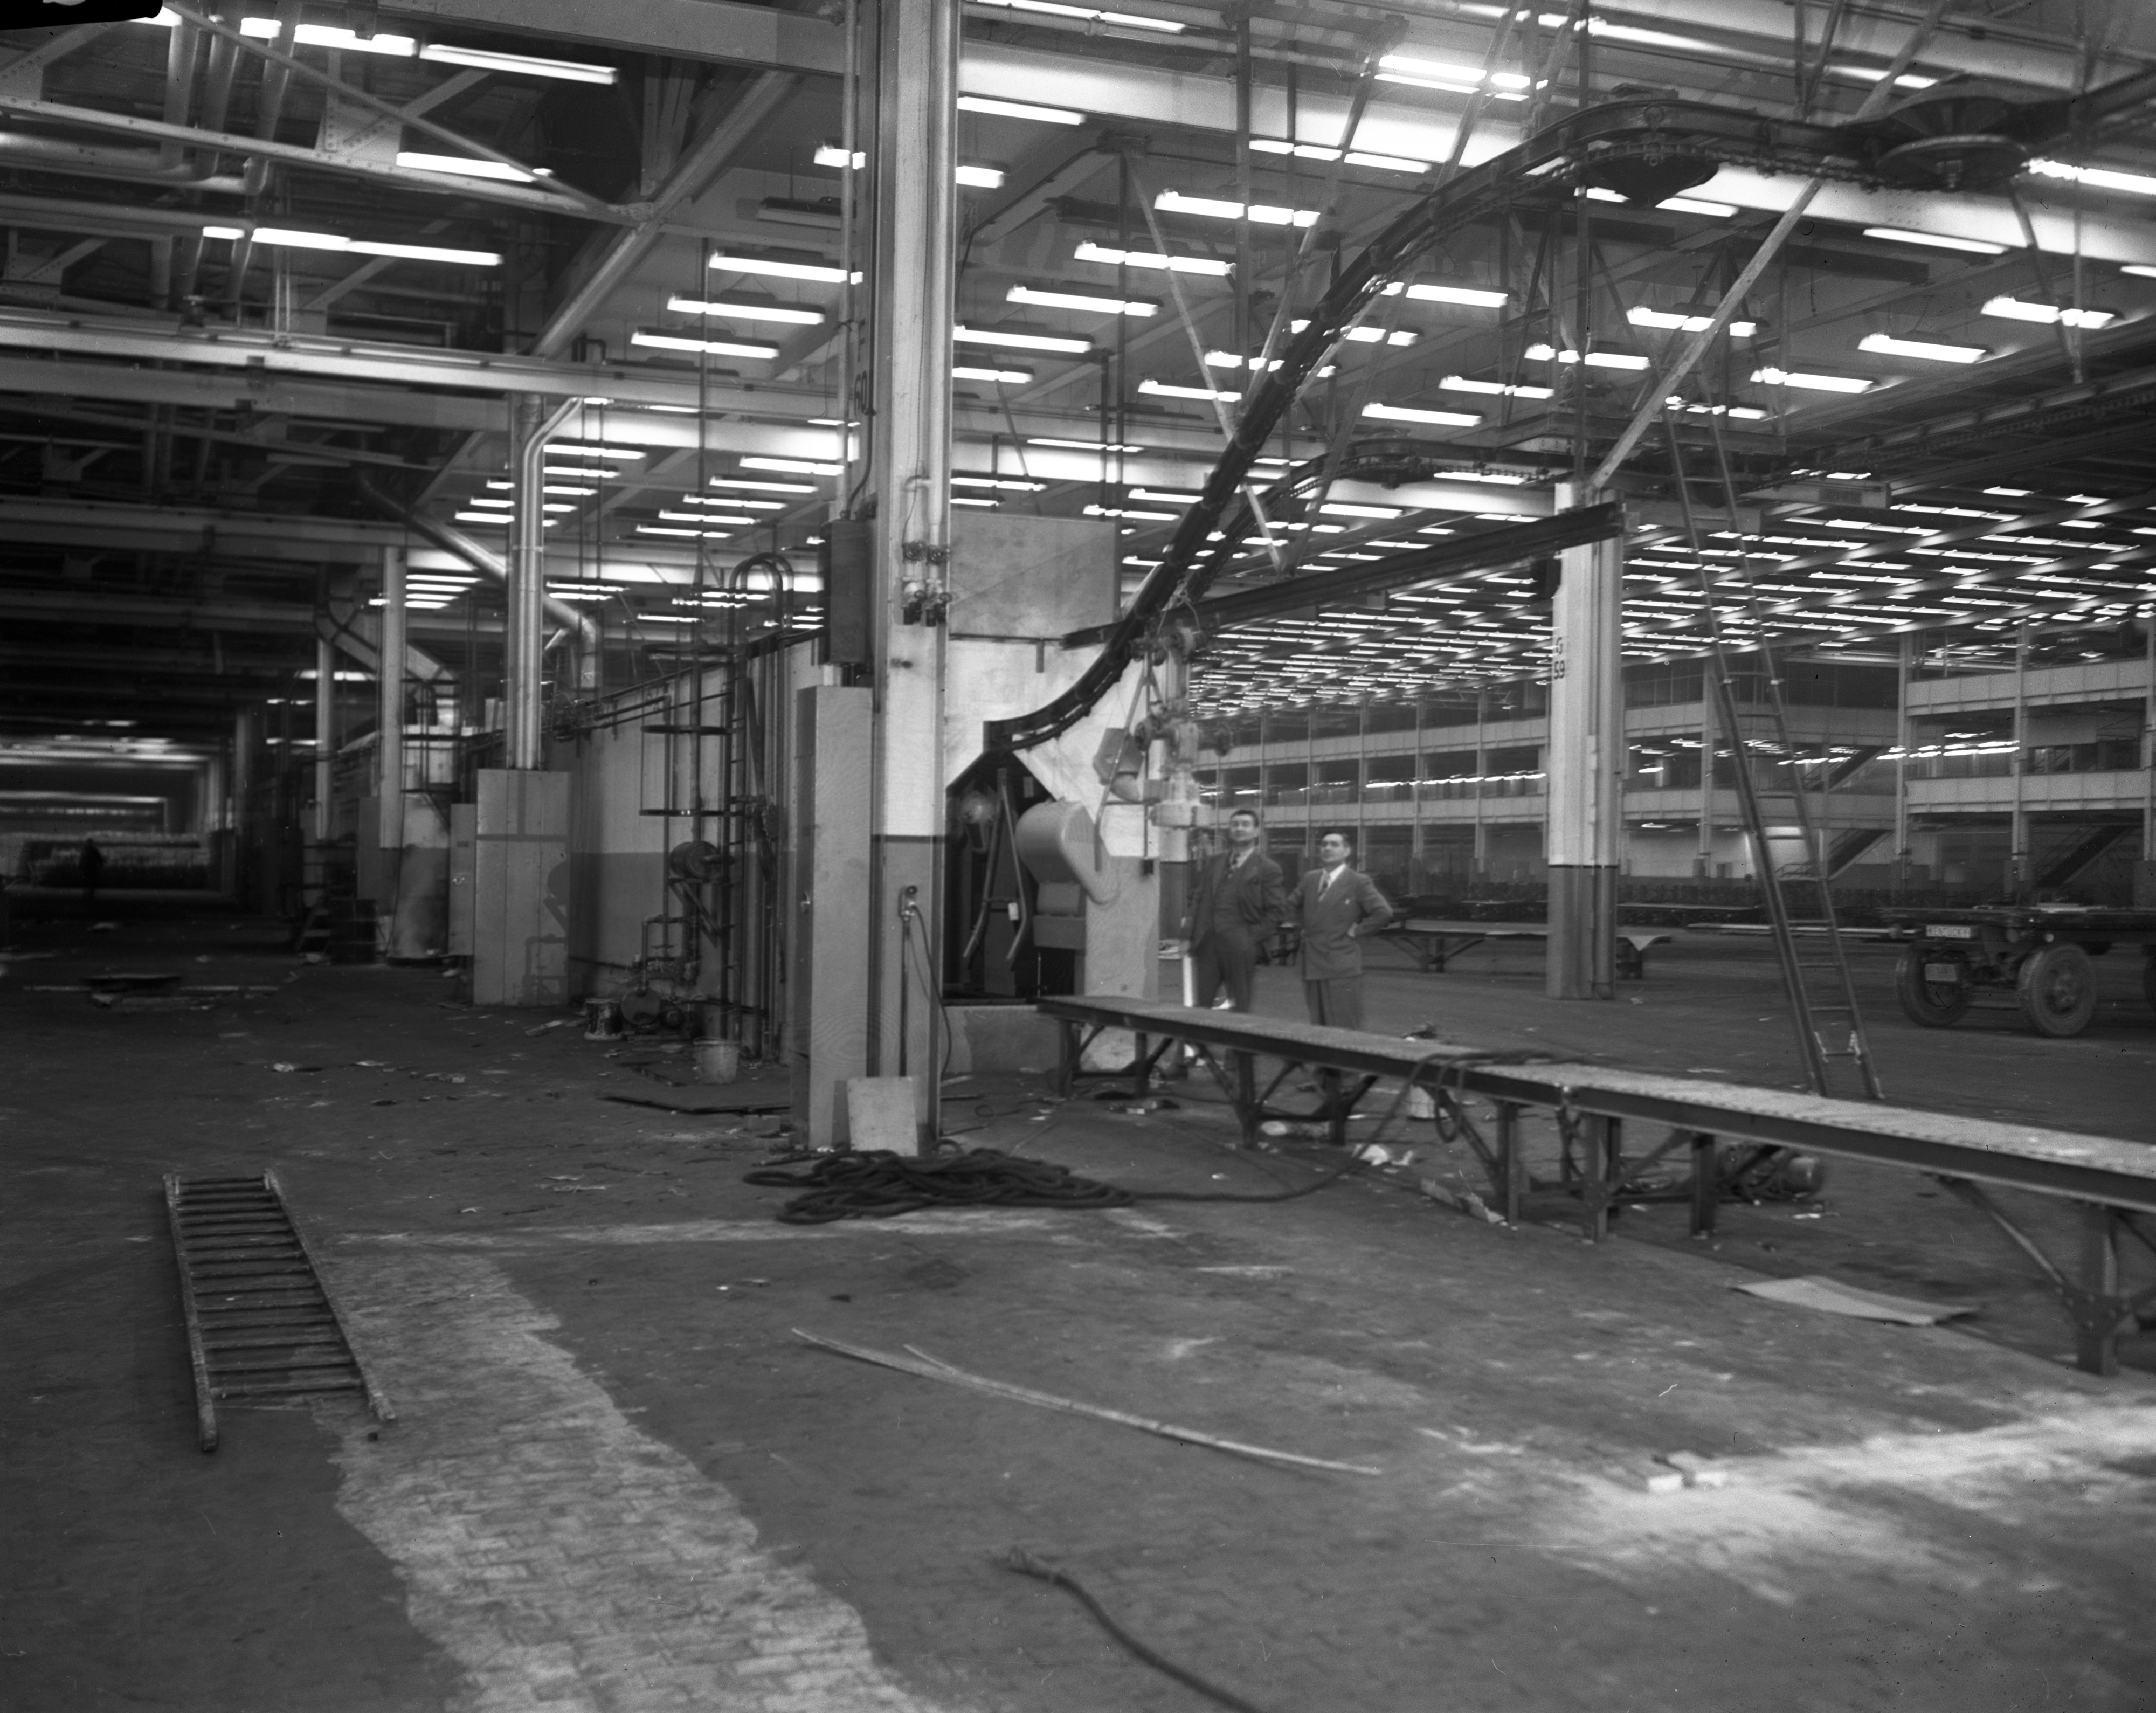 Kaiser-Frazer Corp.'s reconversion of Willow Run Bomber Plant, February 1946 image